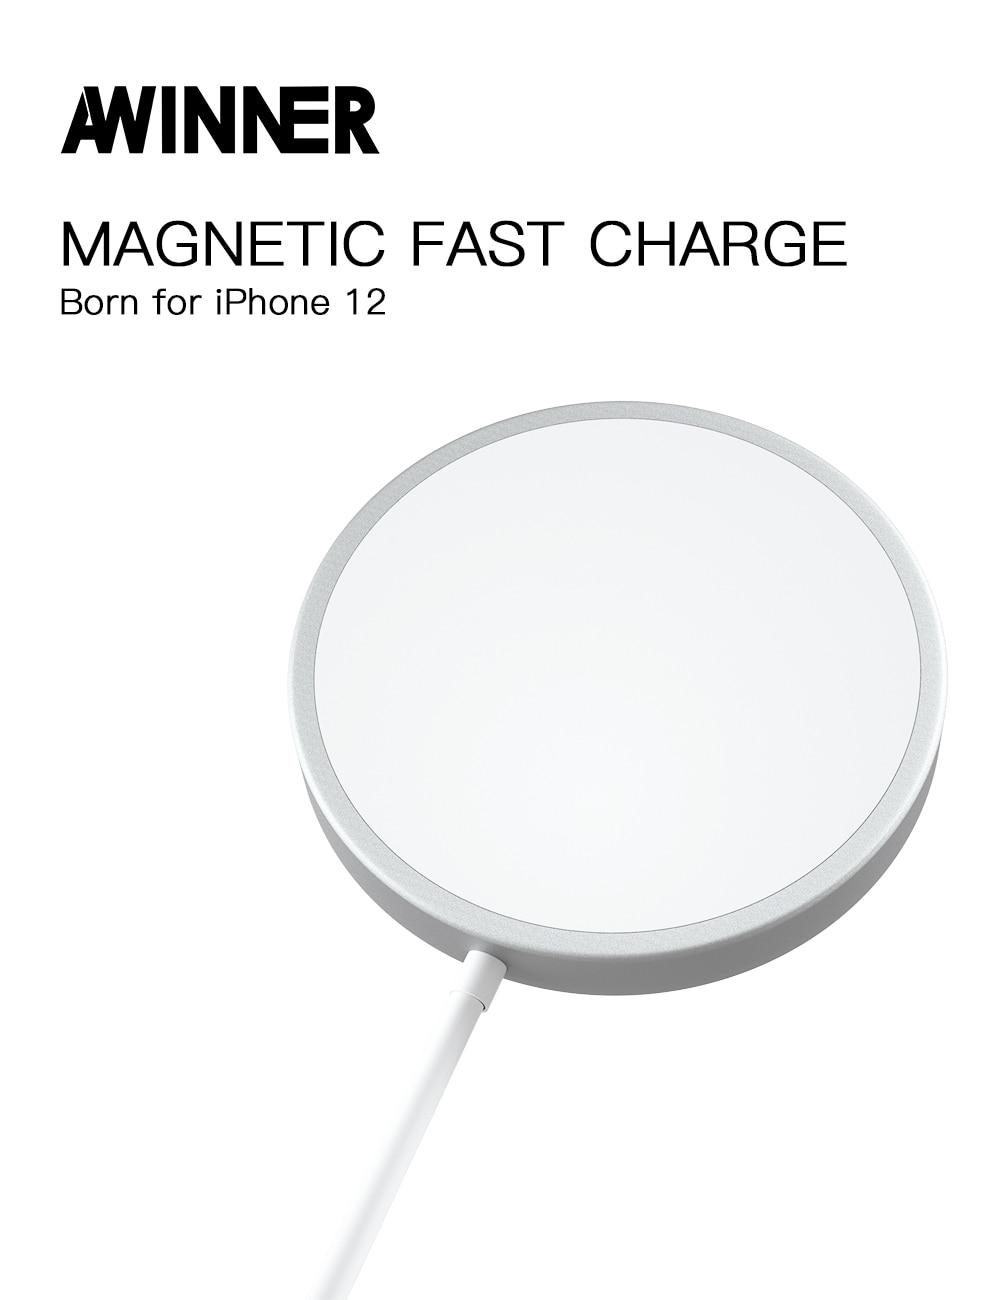 15W Magnetic Wireless Charger For iPhone12 pro Portable Magsafe Fast PD Charger Wireless Charging Pad Cable For iphone 12 Pro Max mini